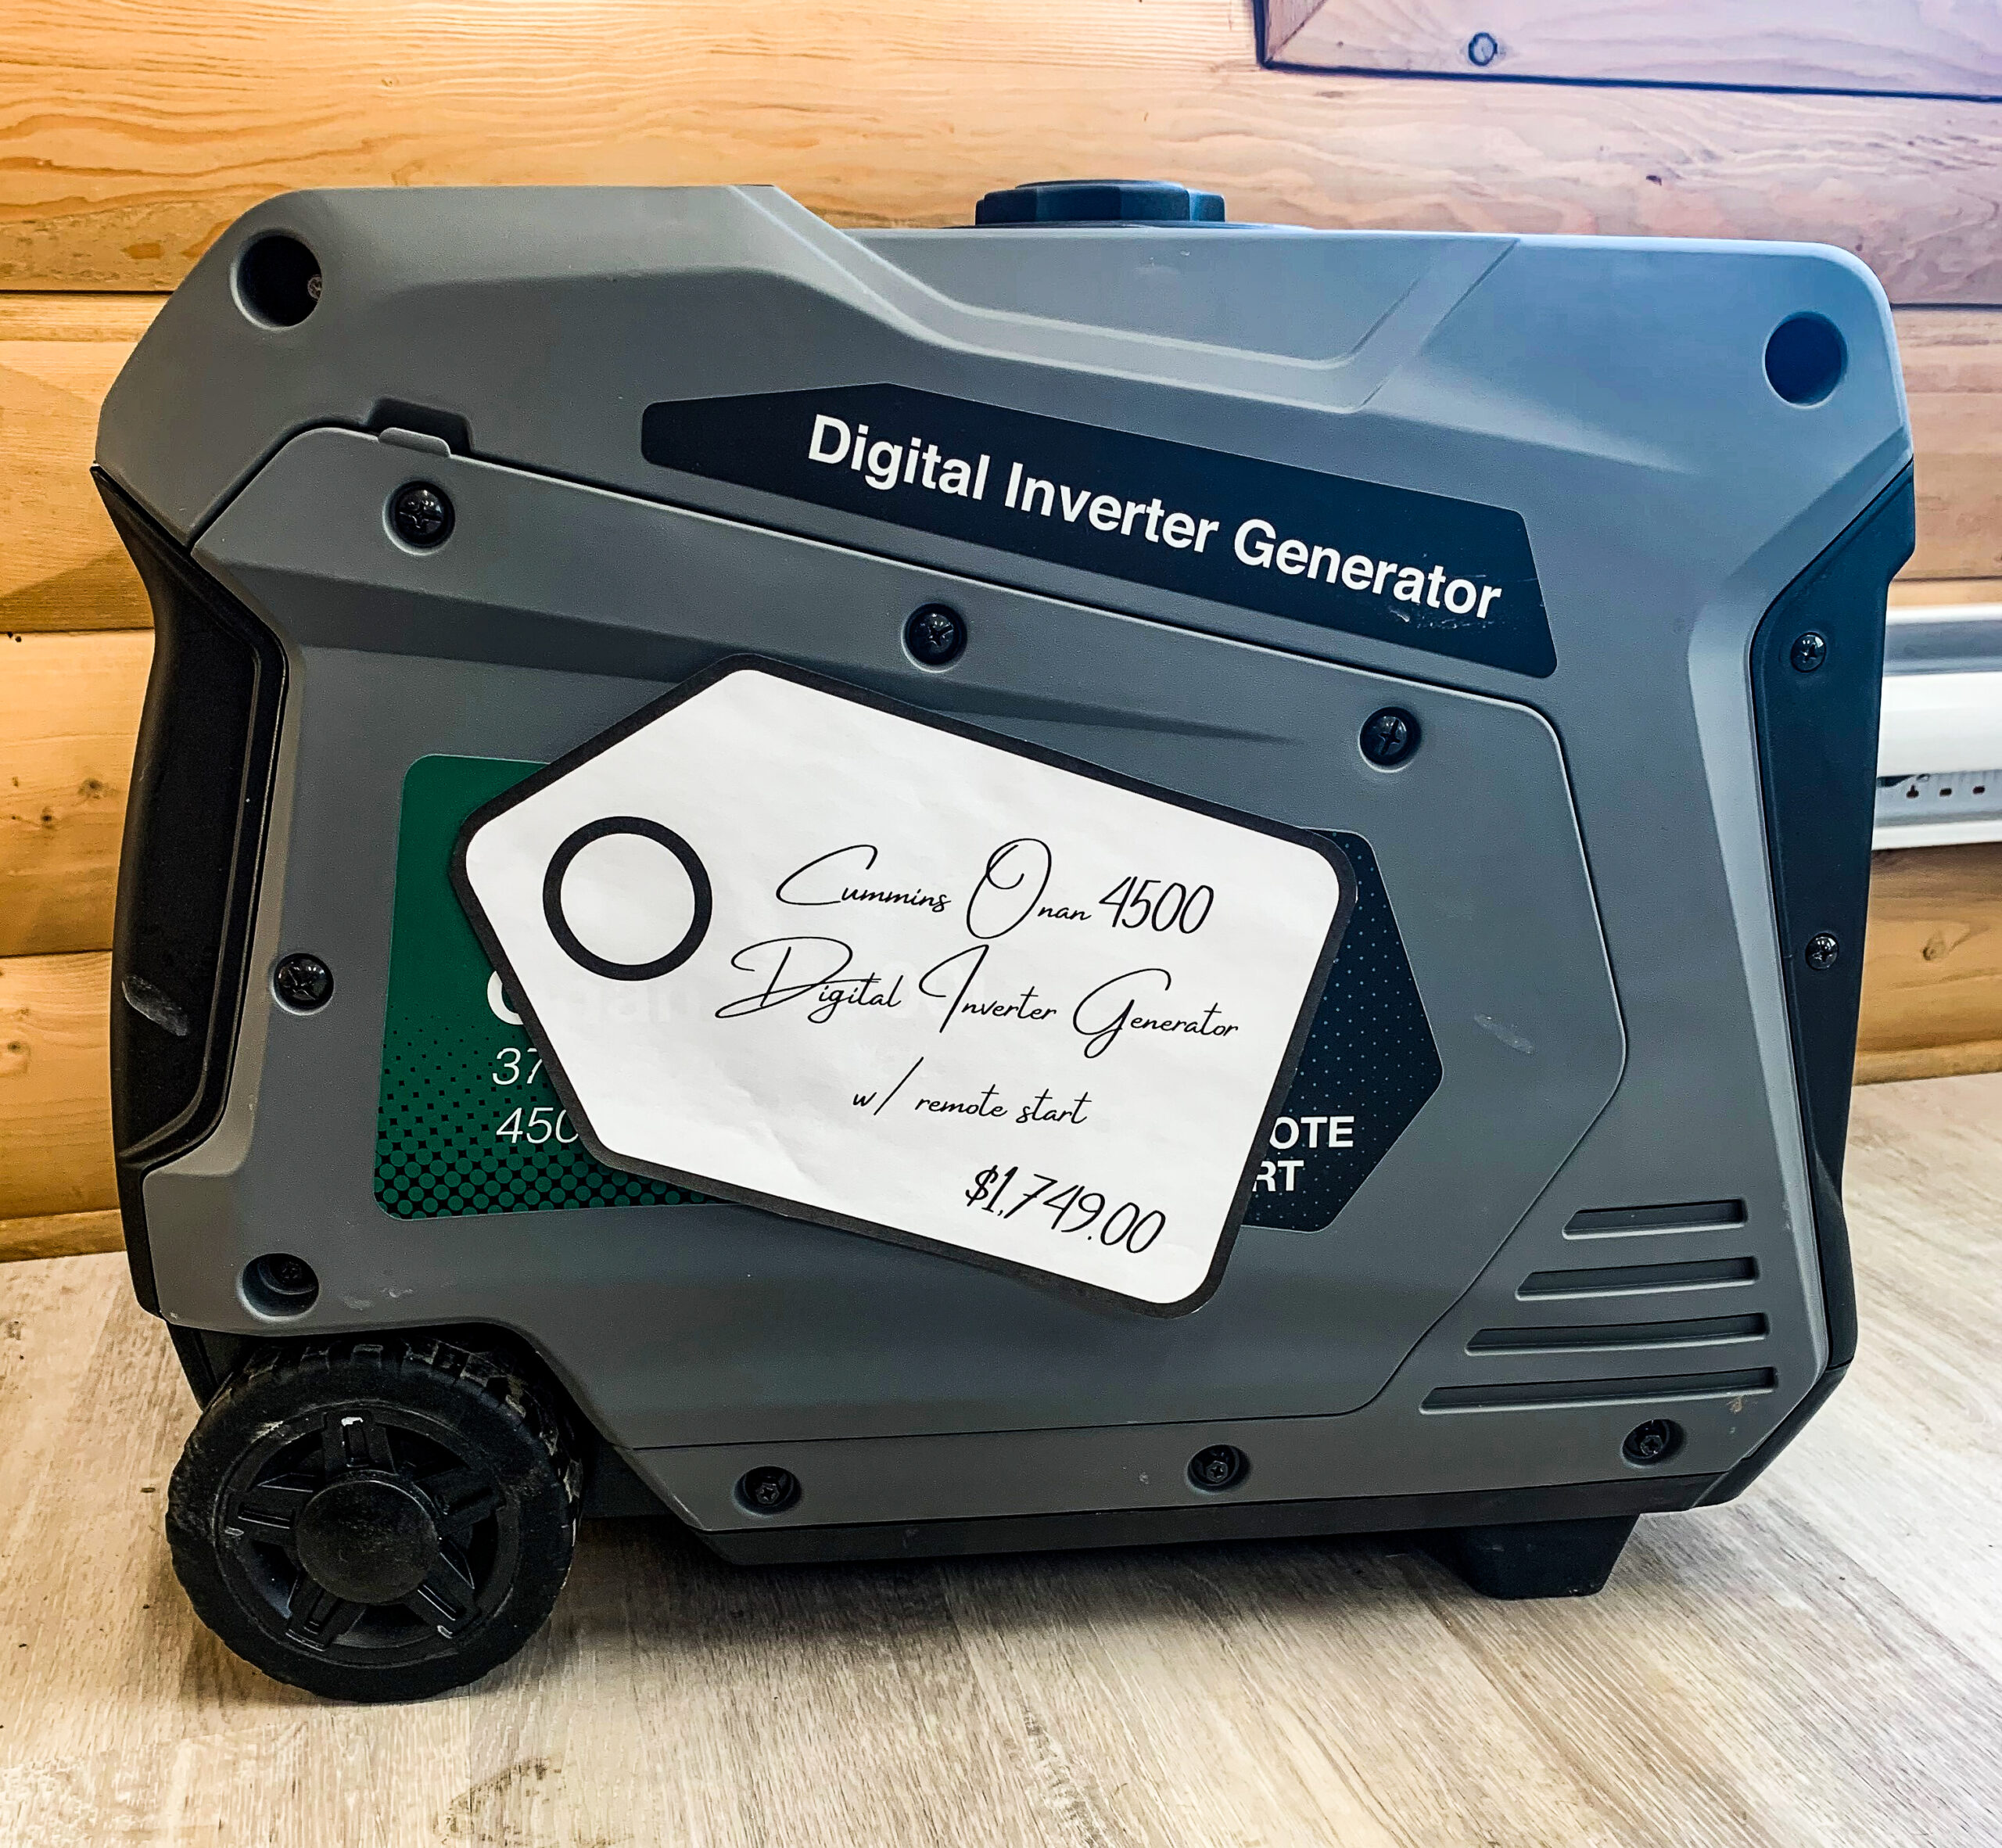 Cummins Onan 4500 Digital Inverter Generator w/ Remote Start